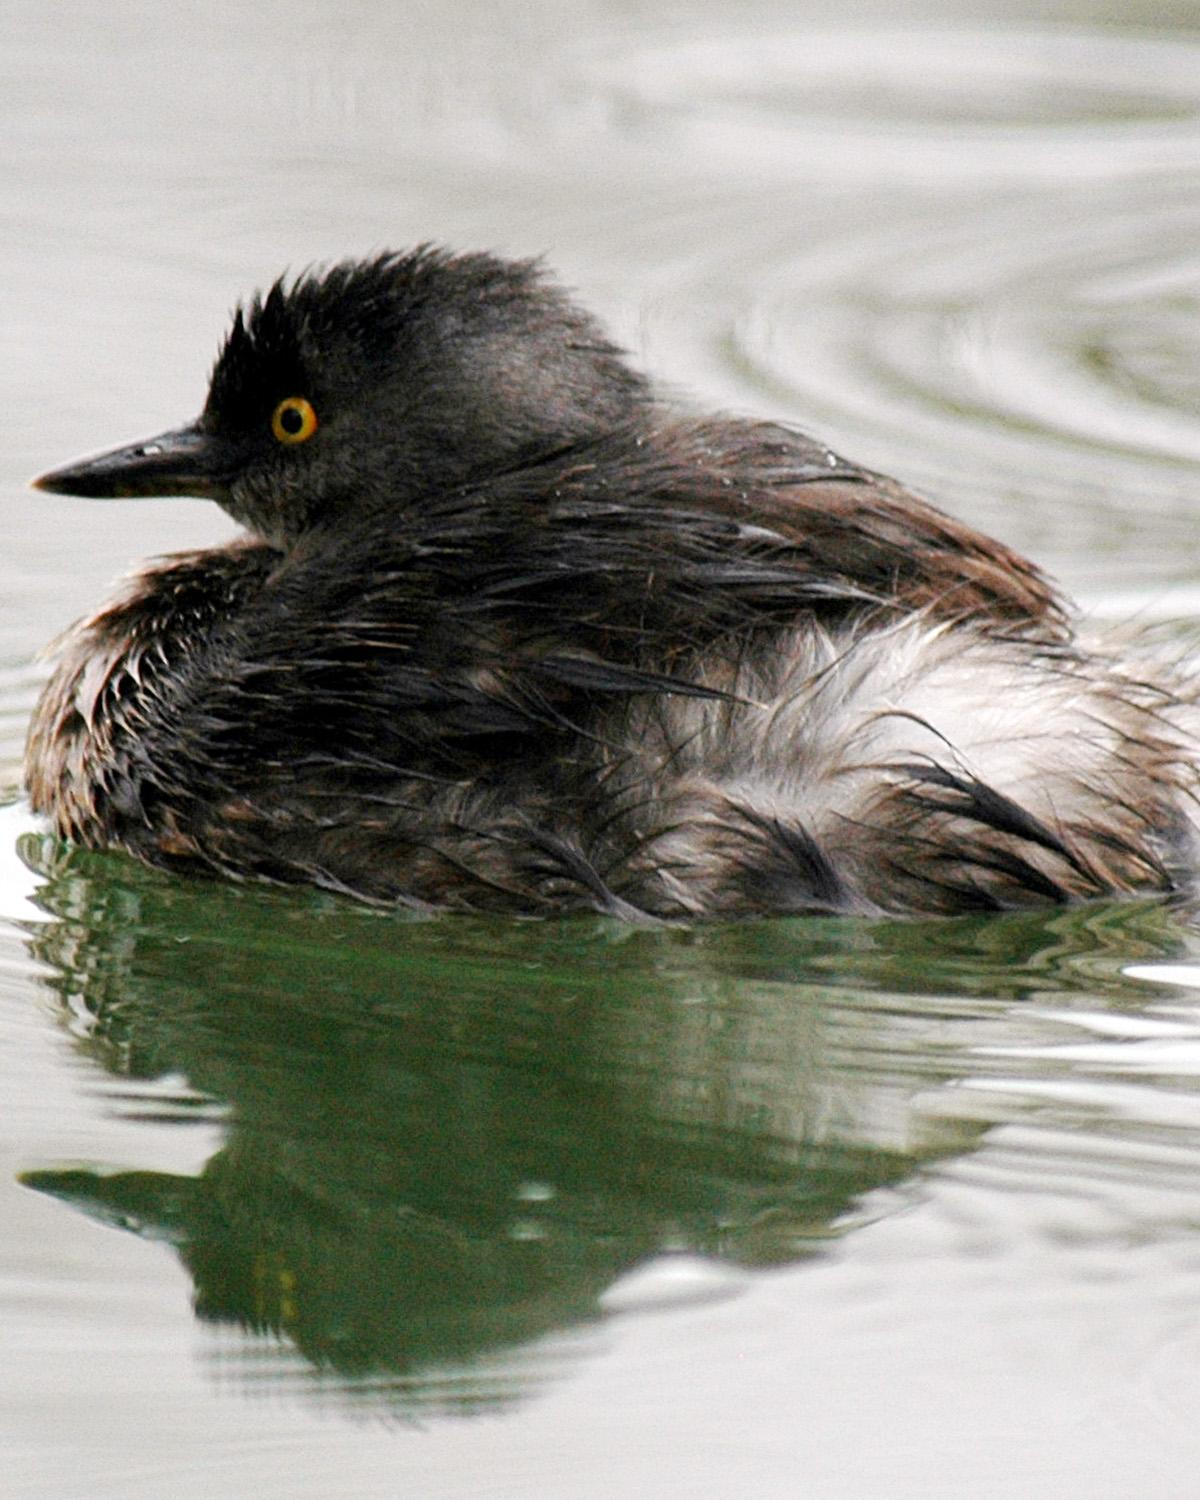 Least Grebe Photo by Magill Weber